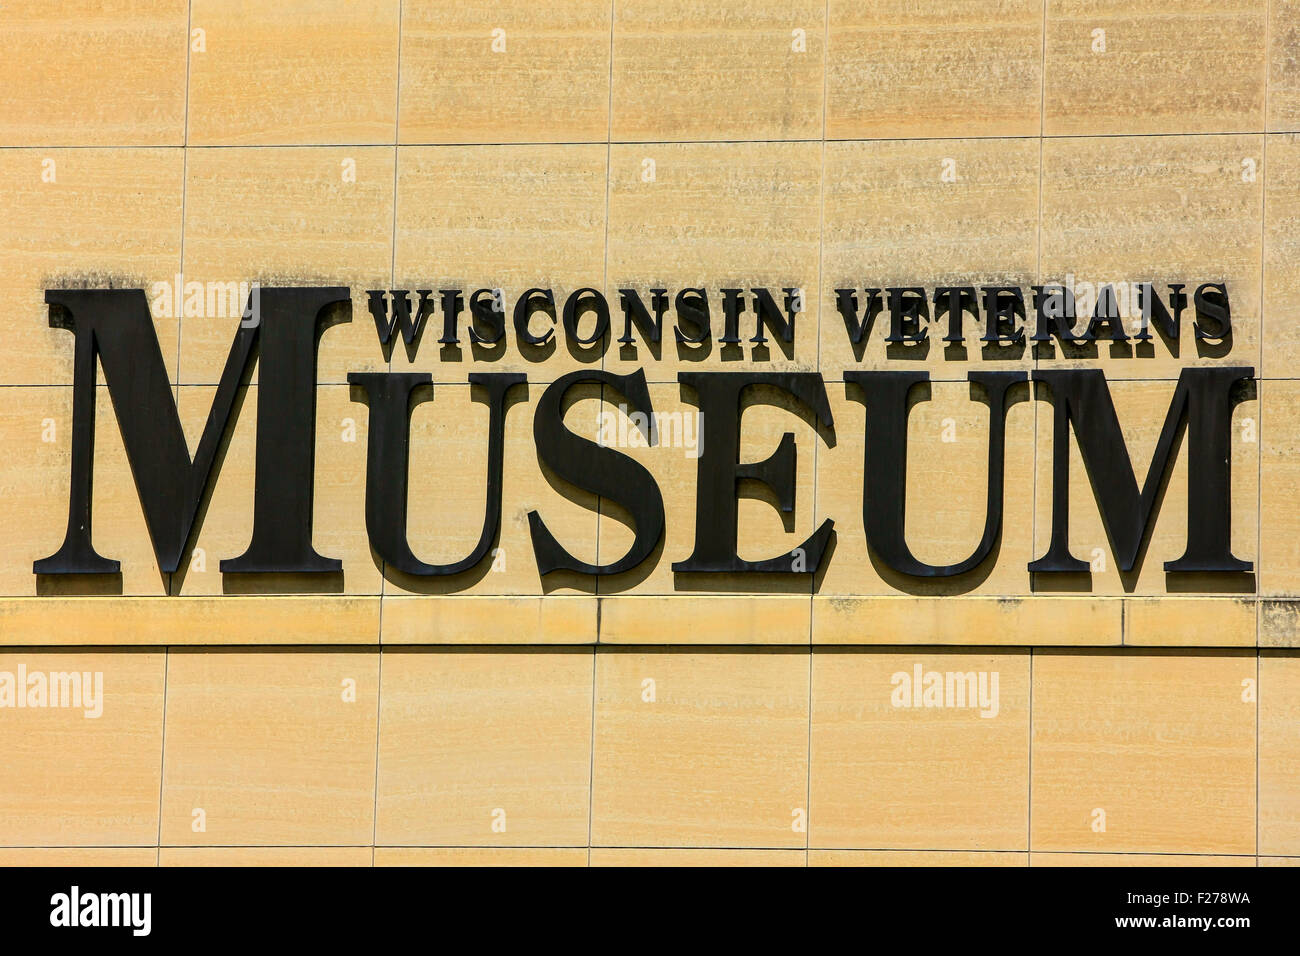 The Wisconsin Veterans Museum sign on the wall outside the building in downtown Madison - Stock Image